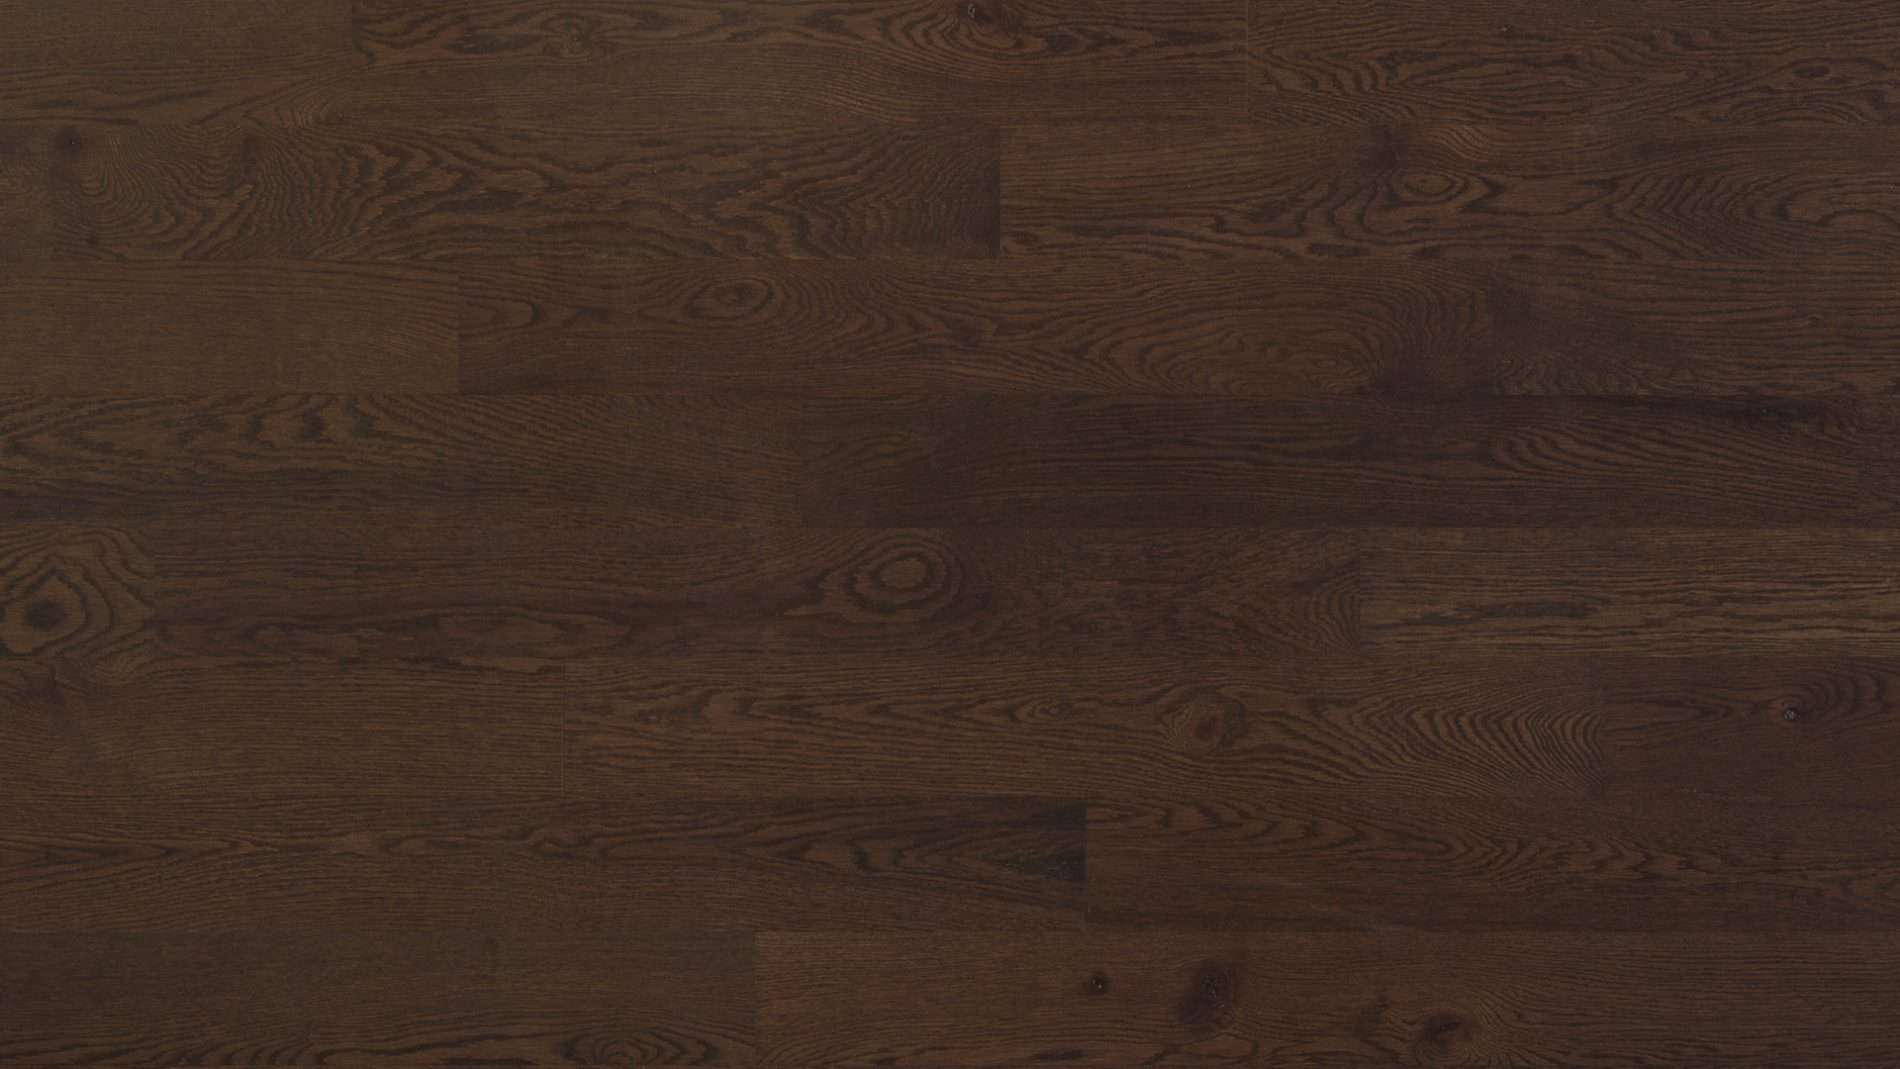 Hardwood floor | Red oak wire brushed derby